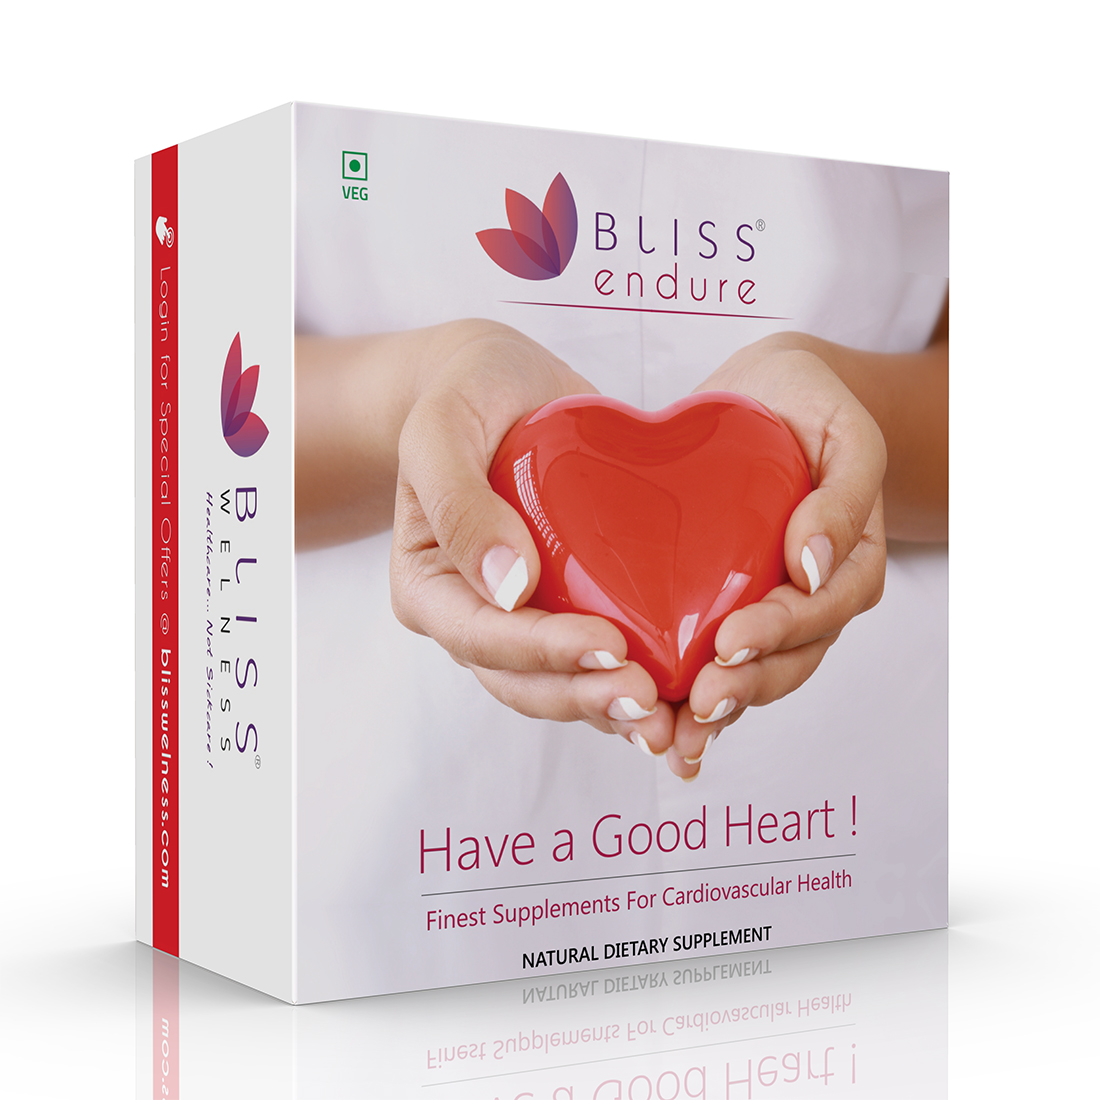 Bliss Welness Endure Bliss Omega 3 6 9 + Phytosterols Heart Health Combo for Lipid Care - 2 Bottles (60 Capsules)